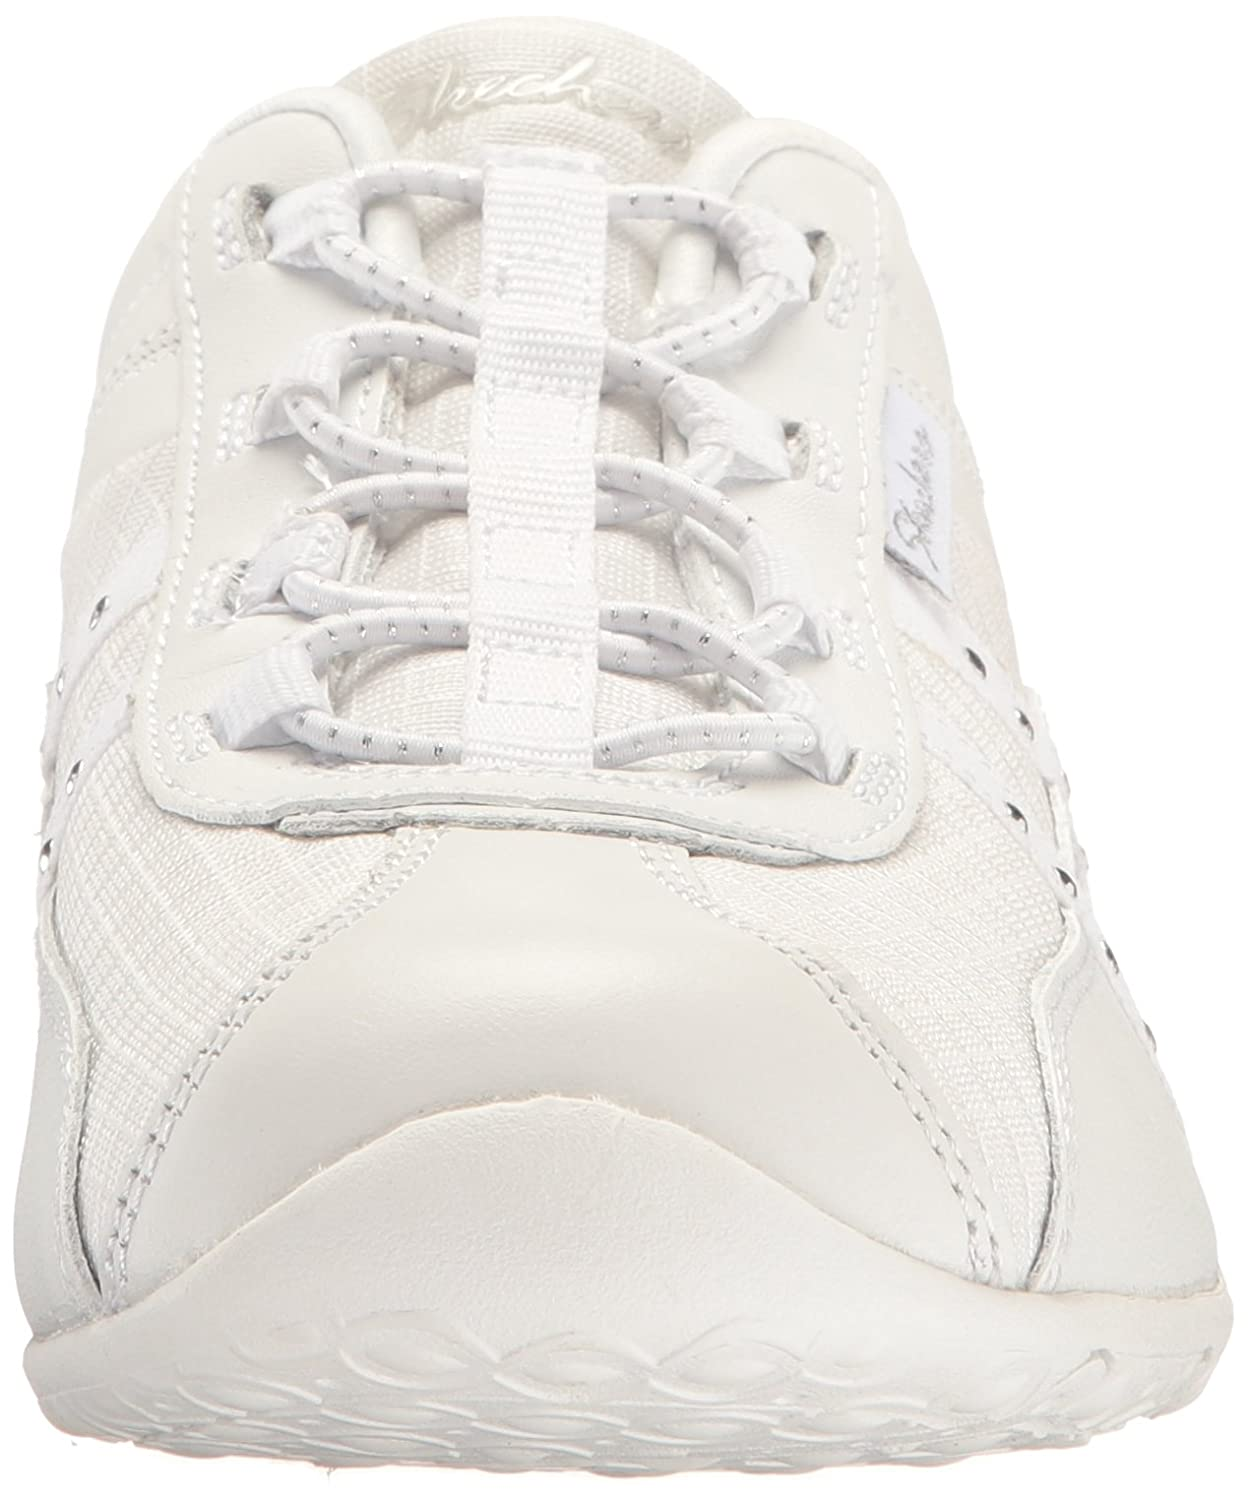 Skechers Unity-Pure Bliss, Entrenadores para Mujer, Blanco (White), 38.5 EU